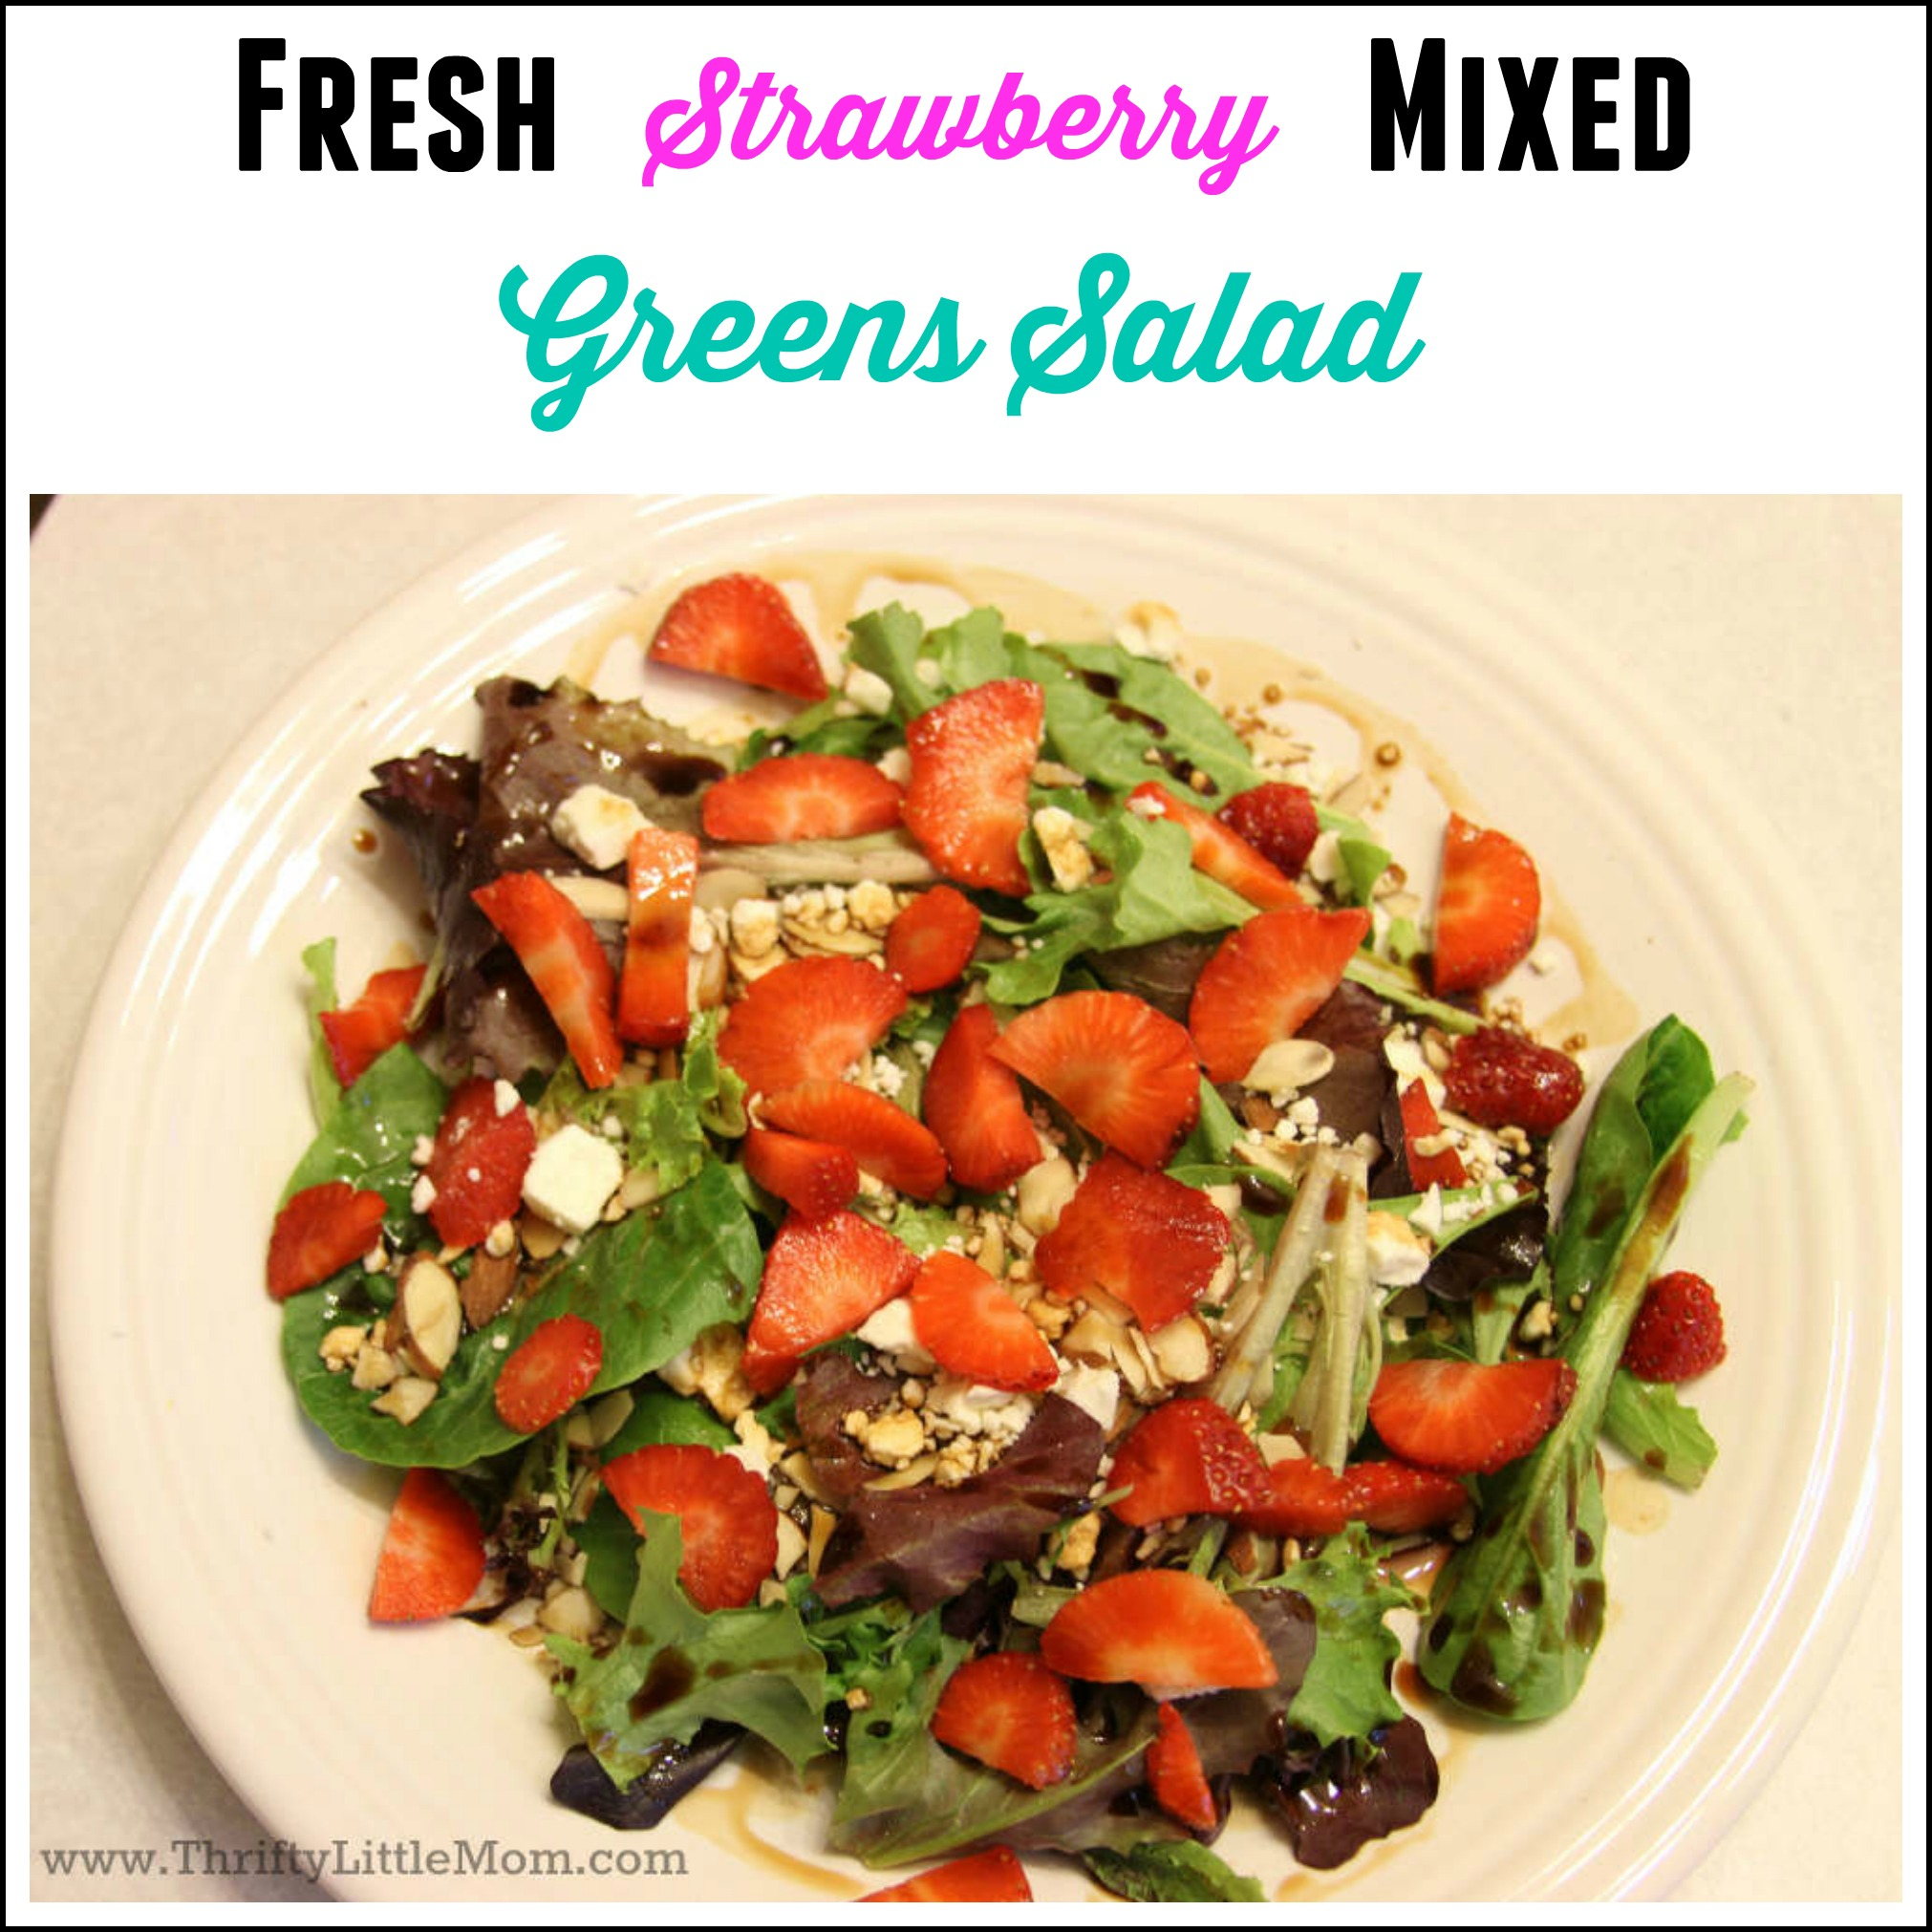 Strawberry Feta Mixed Greens Salad